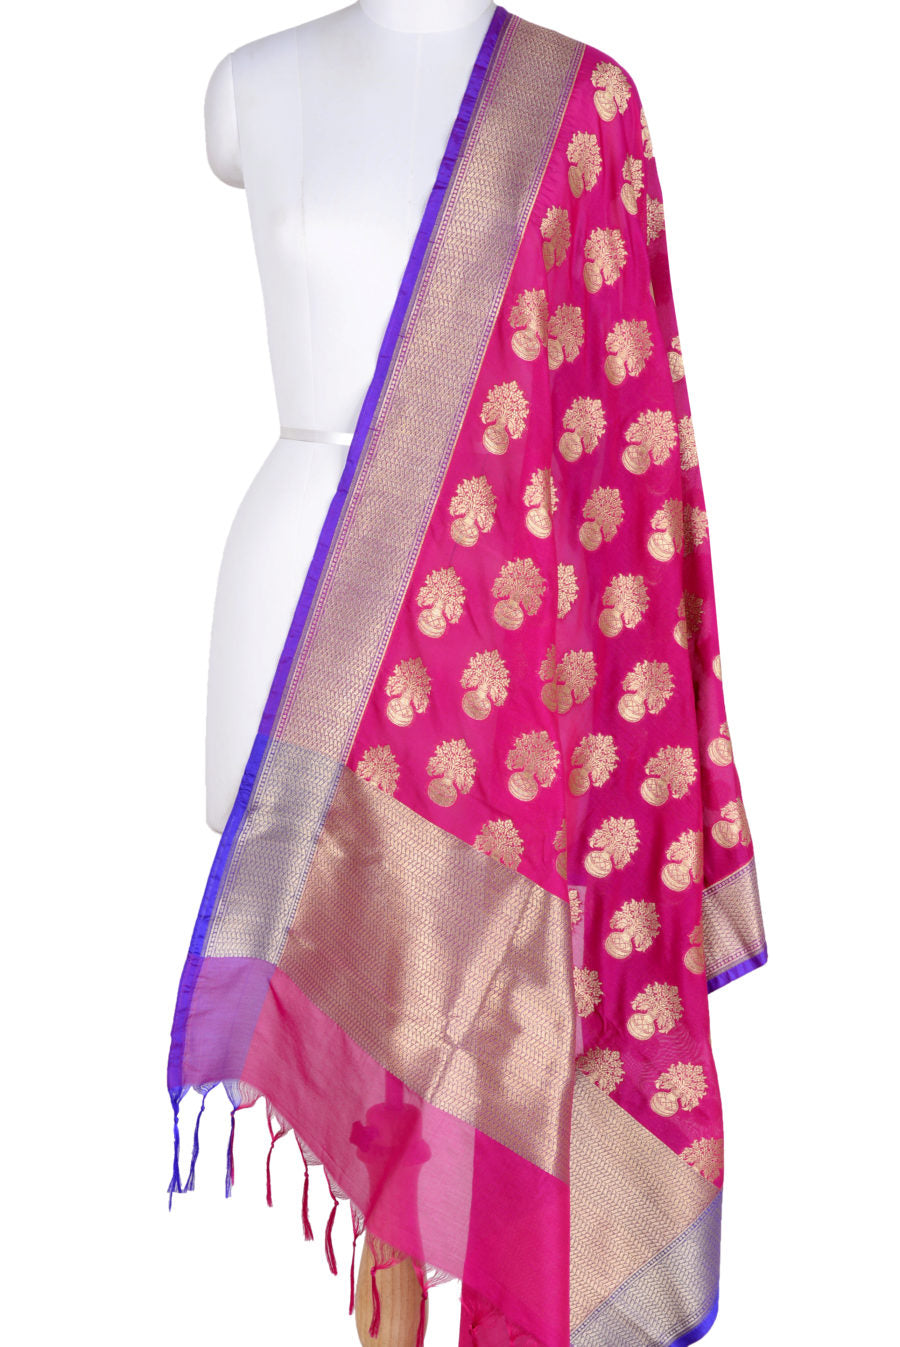 Pink Banarasi Dupatta with flower inside vase motifs (1) Main